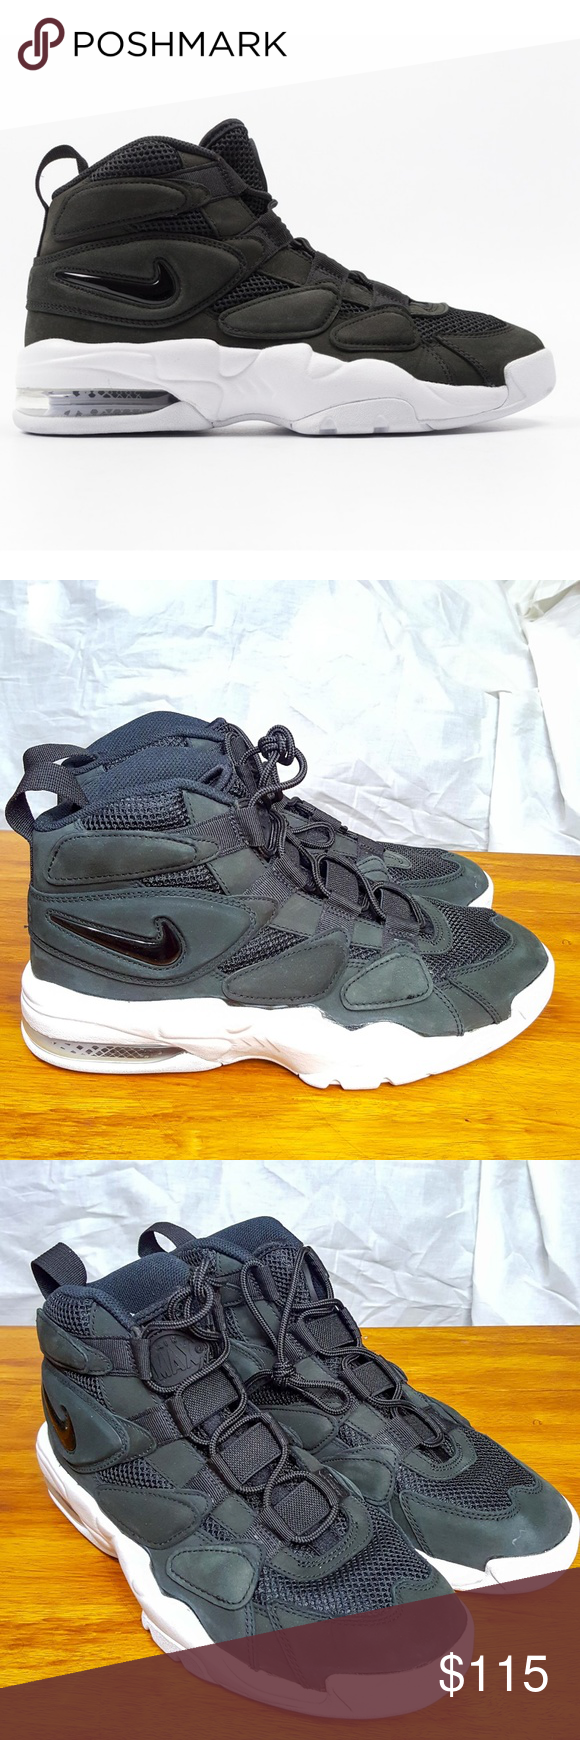 Nike Shoes | Air Max Uptempo 97 Size 115 Le Hoh | Poshmark